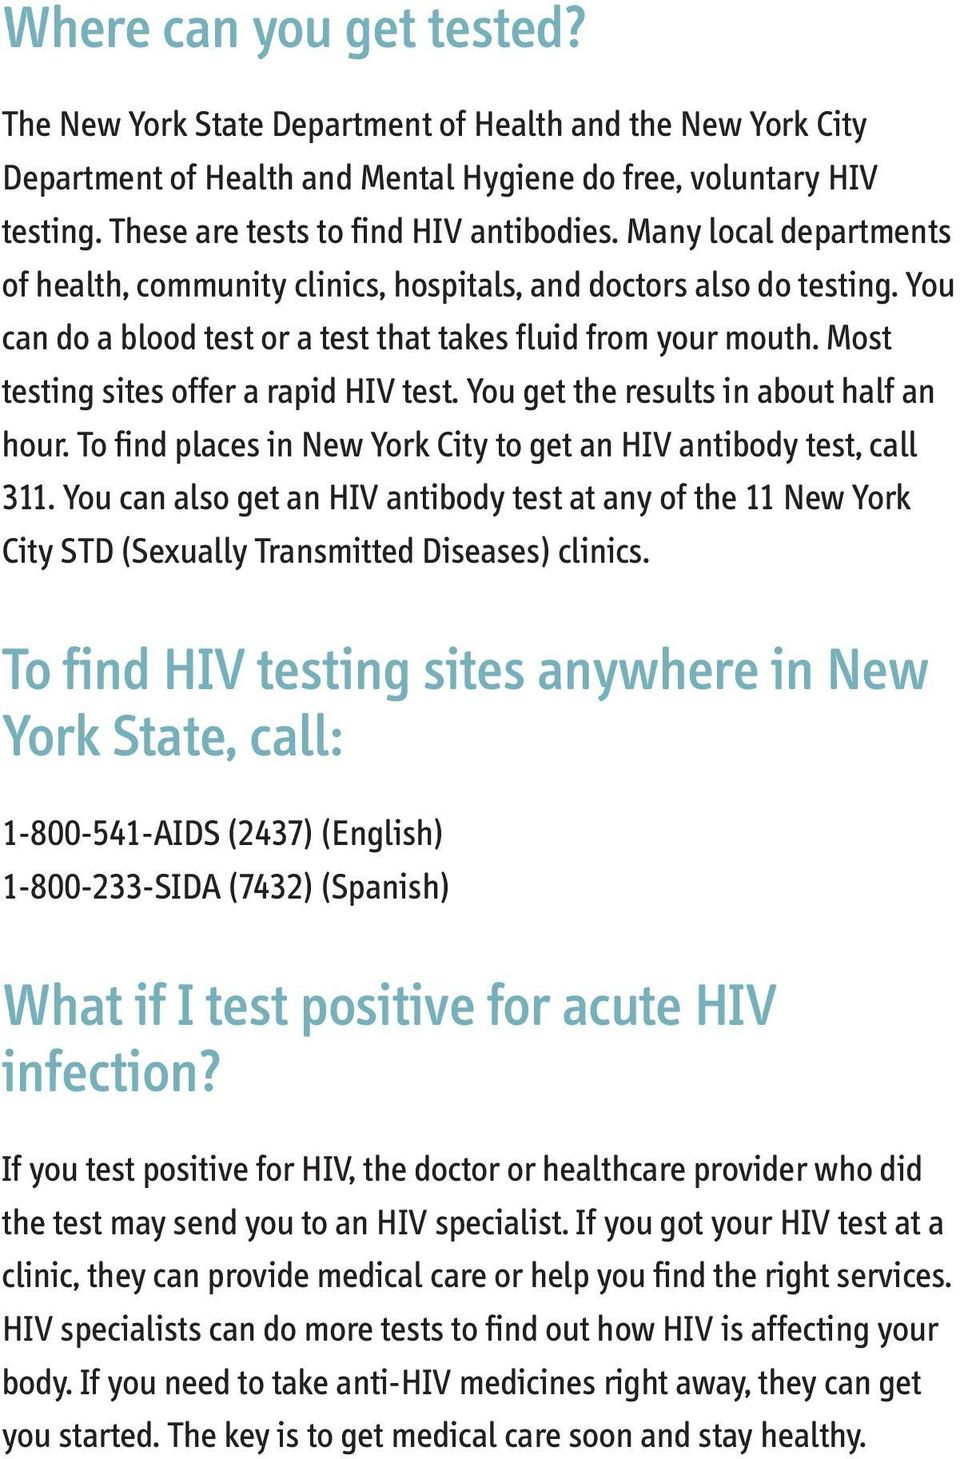 Most testing sites offer a rapid HIV test. You get the results in about half an hour. To find places in New York City to get an HIV antibody test, call 311.